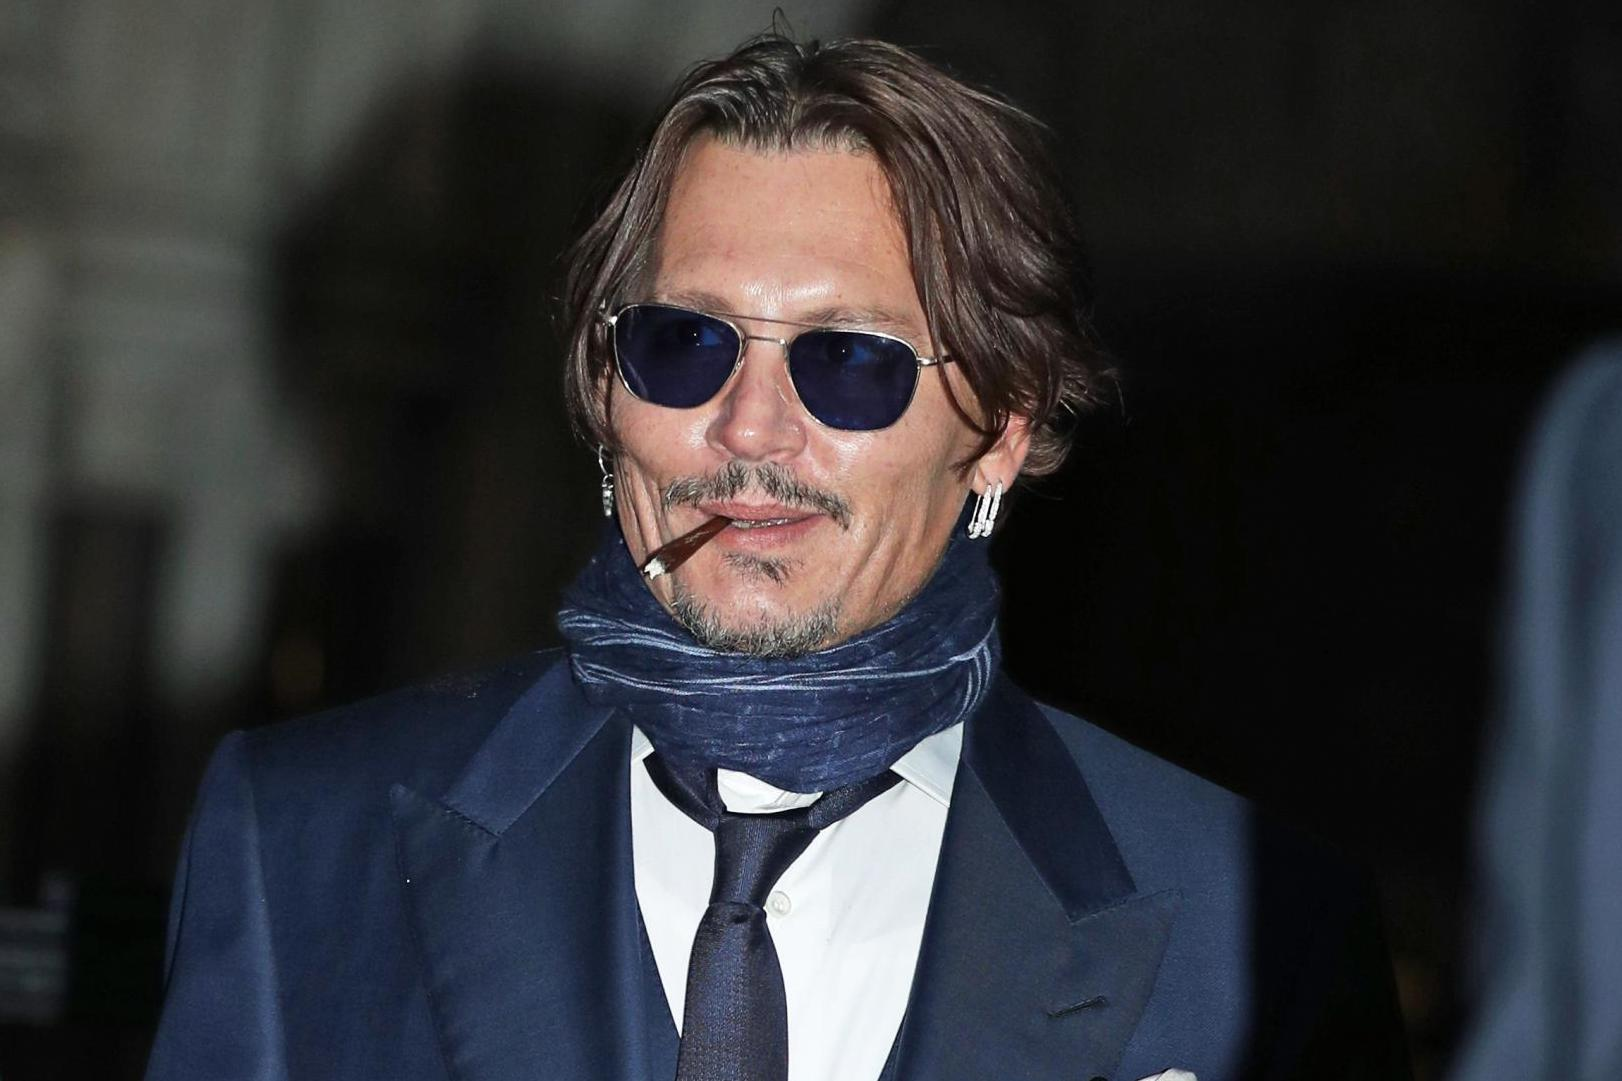 Johnny Depp threatened to 'burn' and 'drown' Amber Heard in texts, court hears